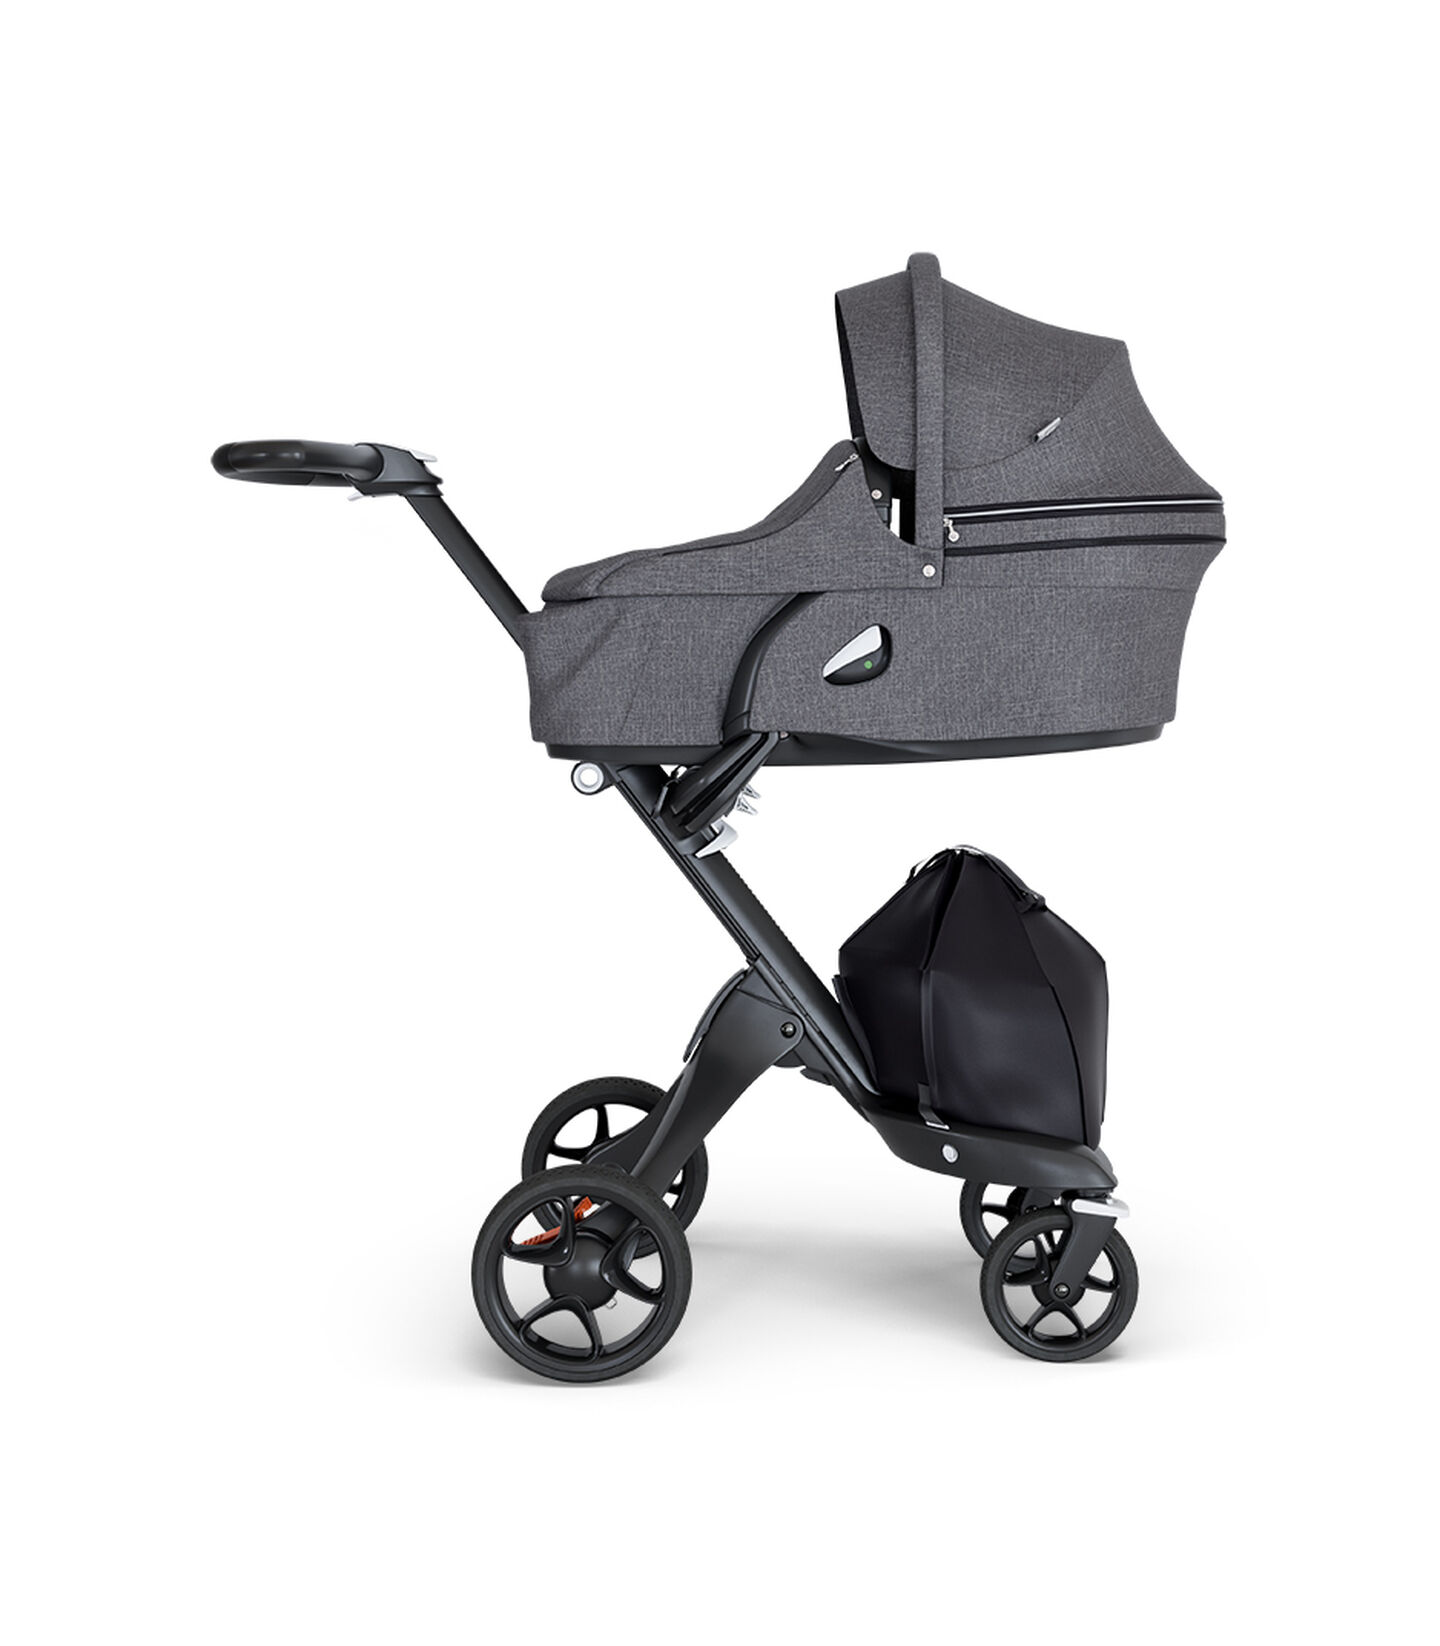 Stokke® Xplory® wtih Black Chassis and Leatherette Black handle. Stokke® Stroller Carry Cot Black Melange.